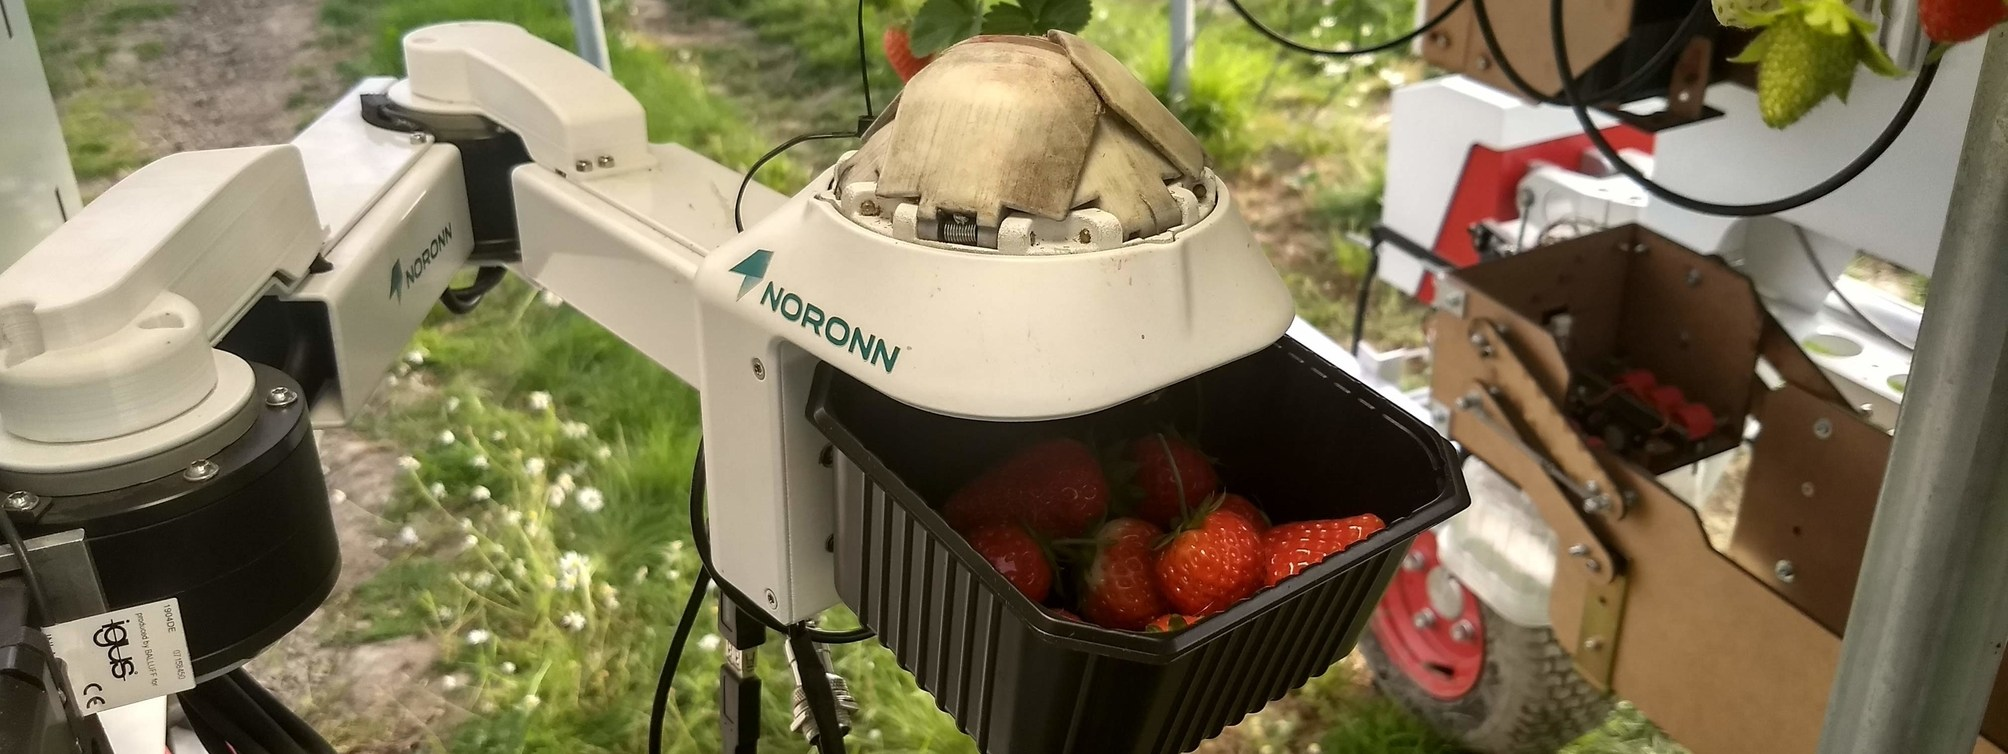 Robotic strawberry harvester developed by NMBU and NORONN